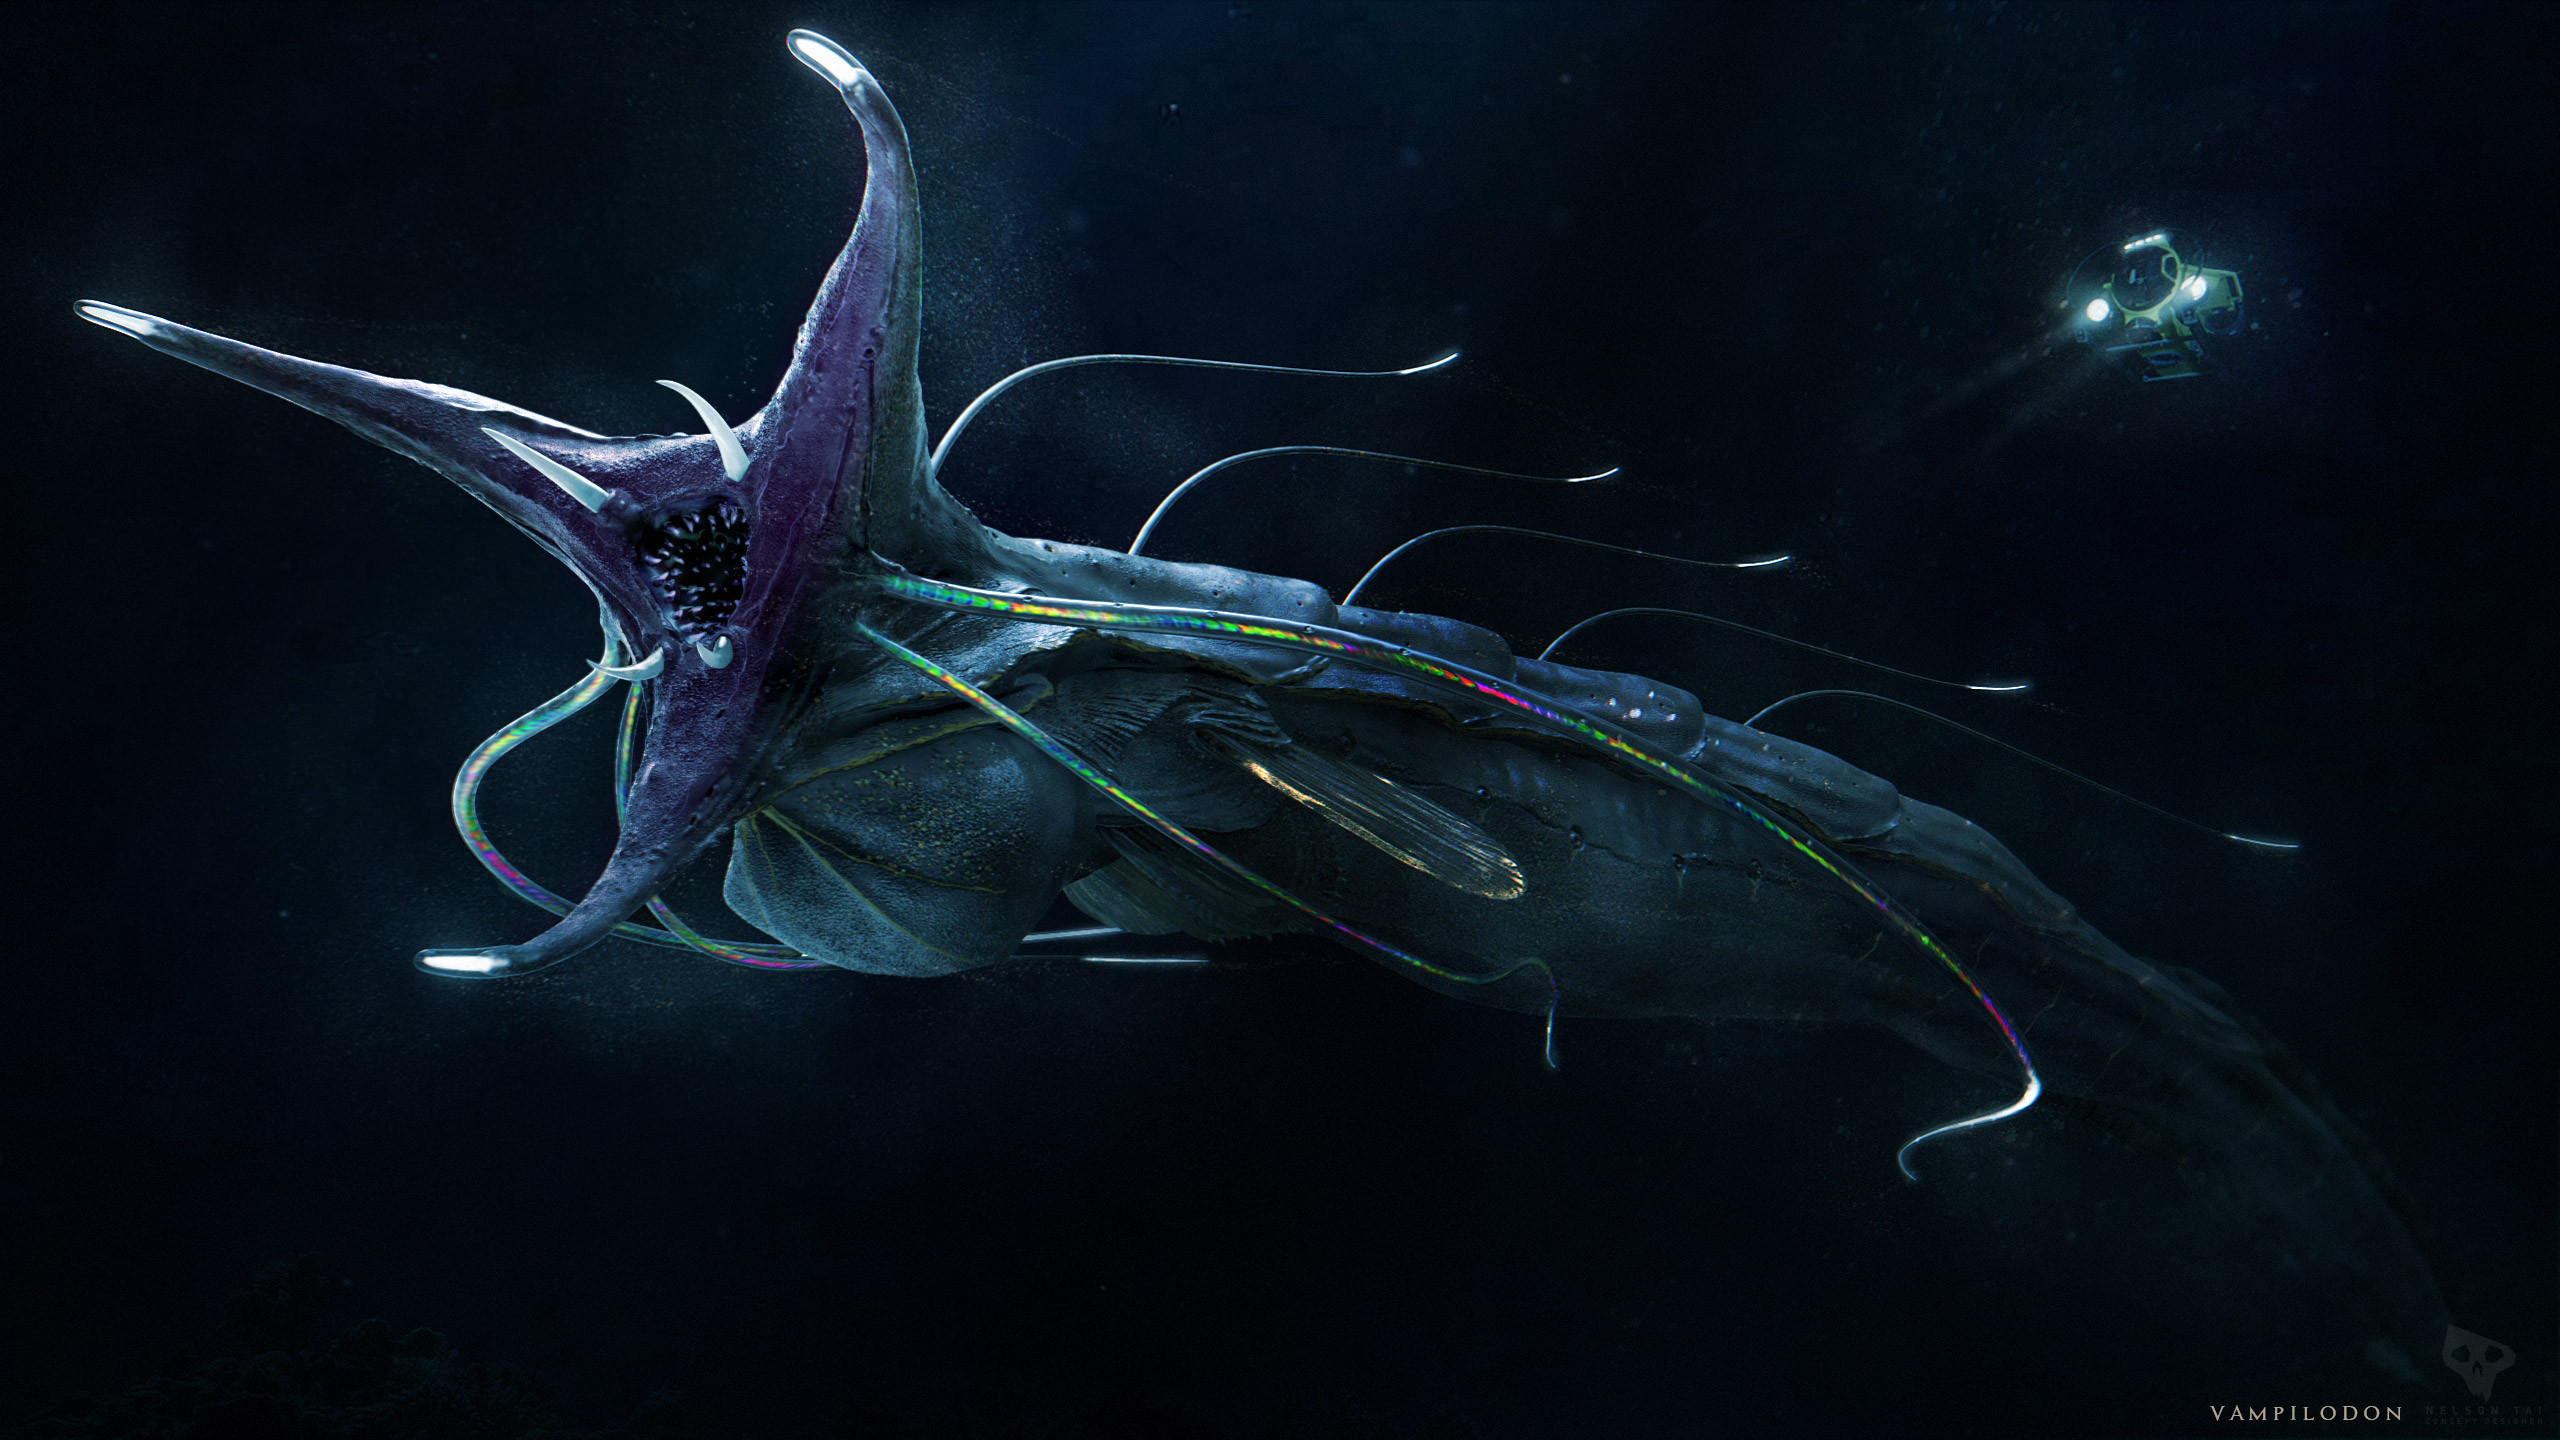 Deepsea Challenger X follows the unknown